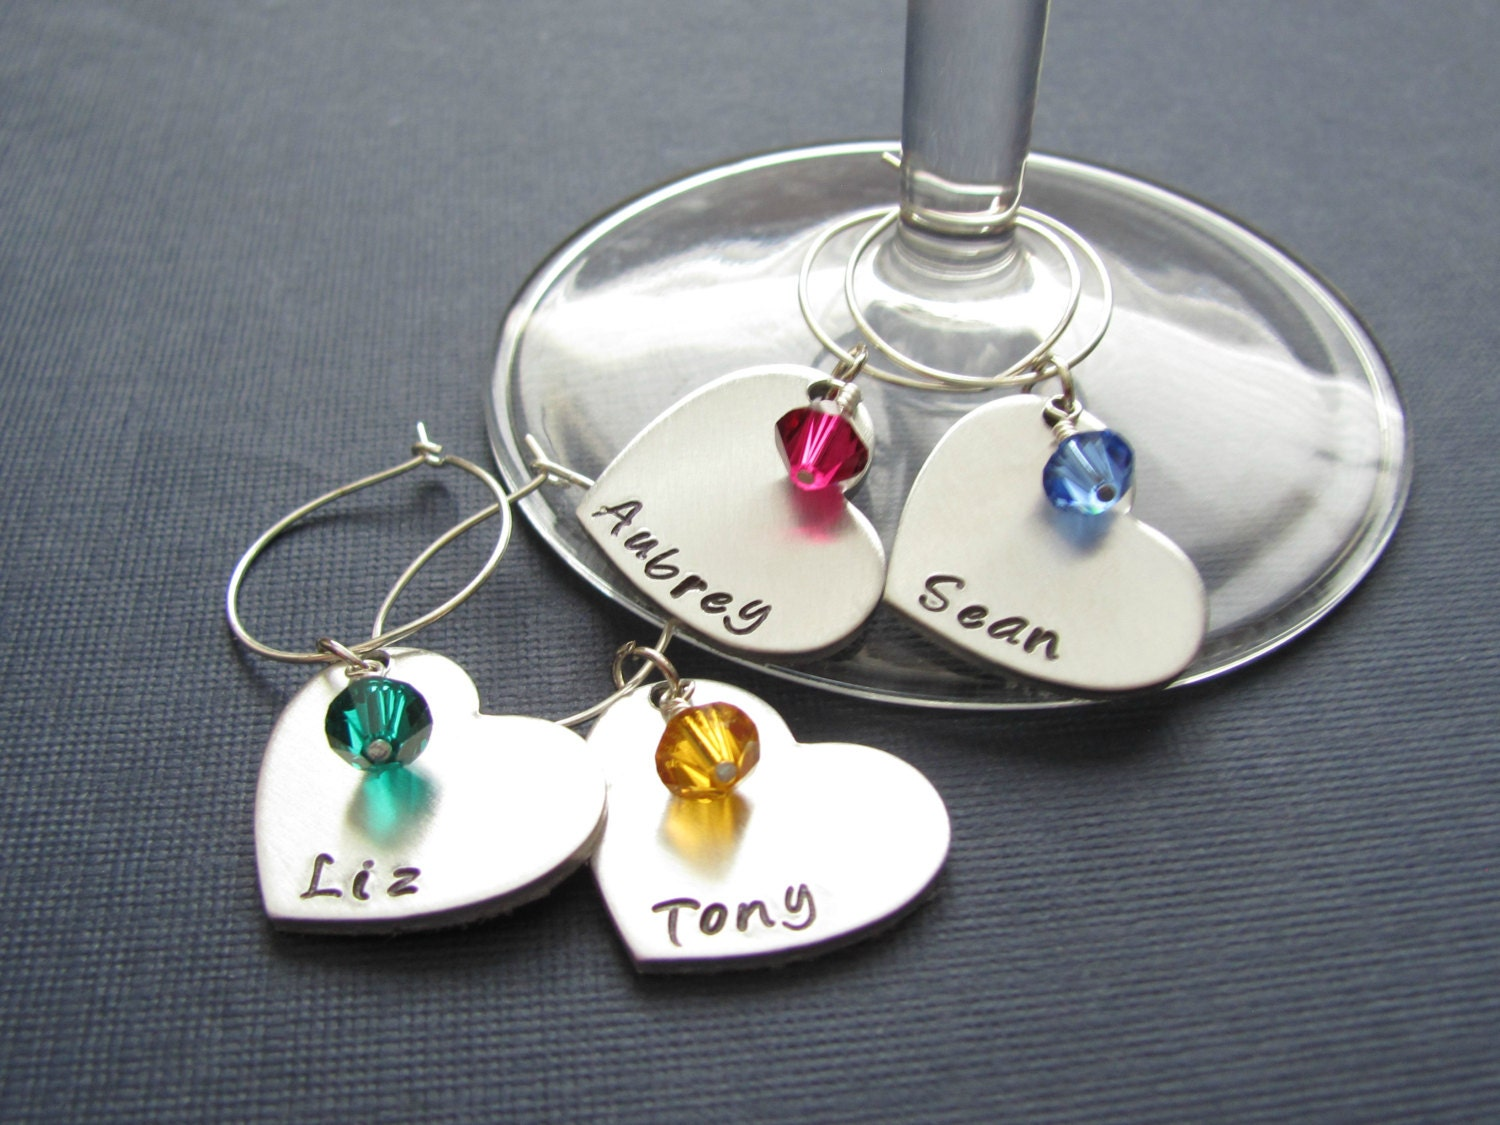 wine charms personalized with name sted